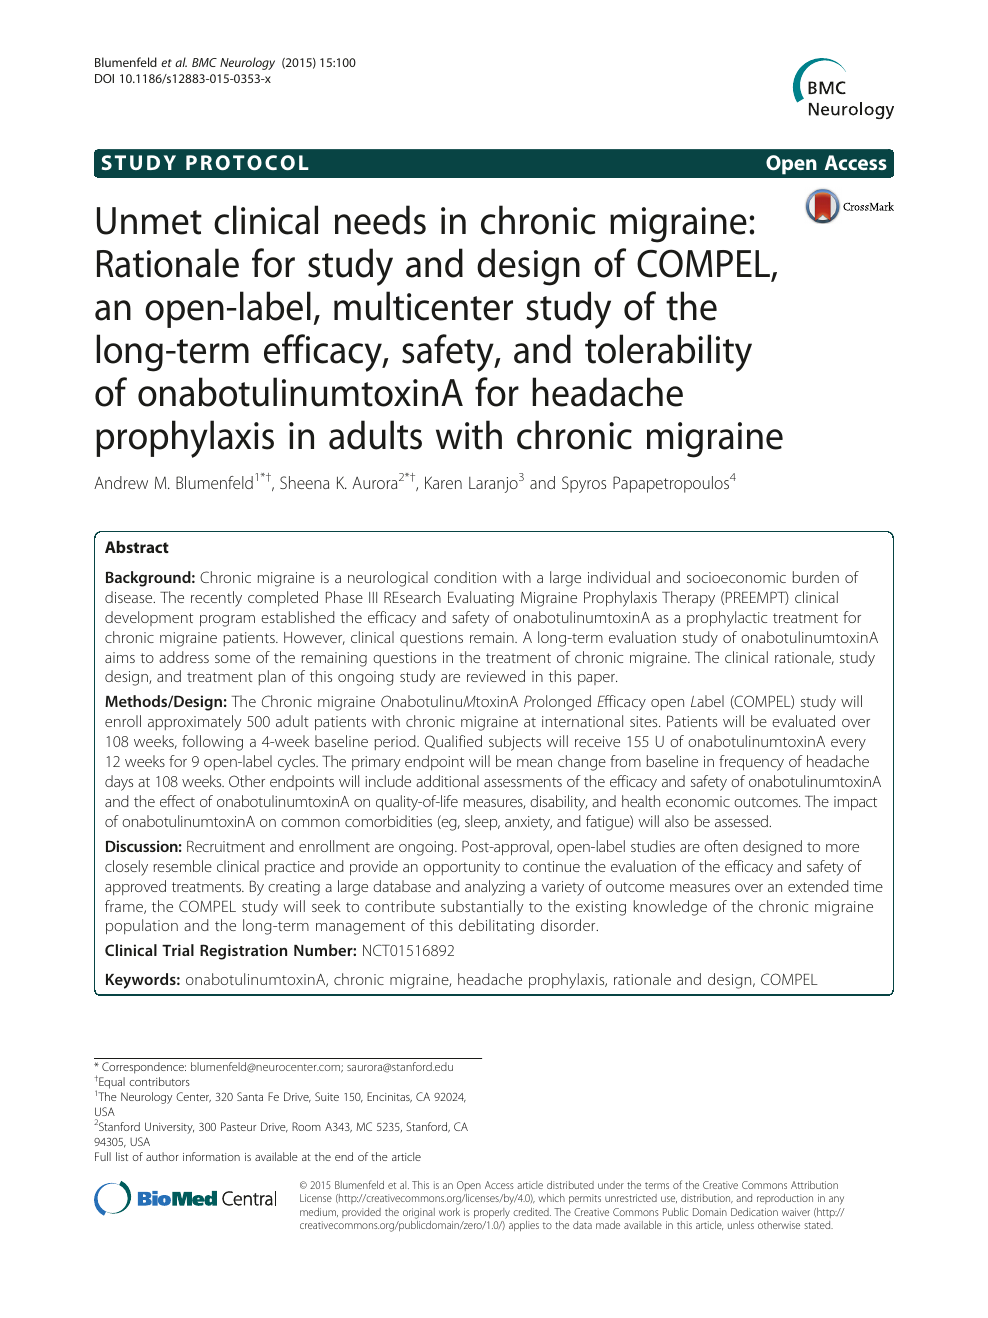 Unmet clinical needs in chronic migraine: Rationale for study and